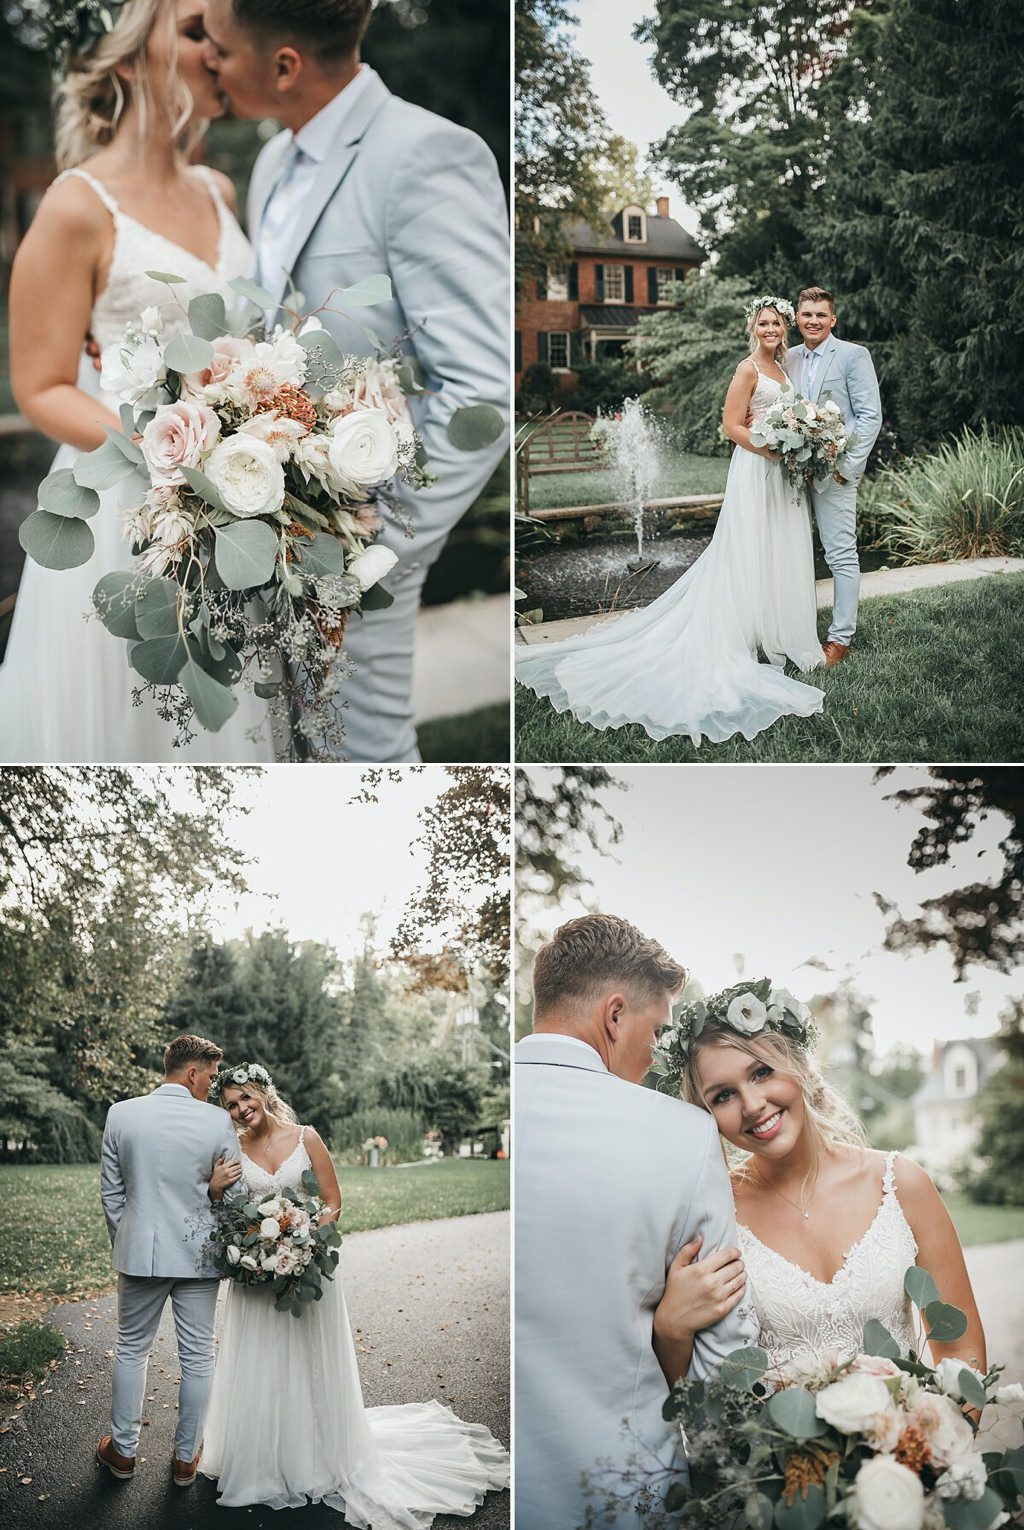 A bride with flower crown posing for photos on wedding day at Stone Mill Inn